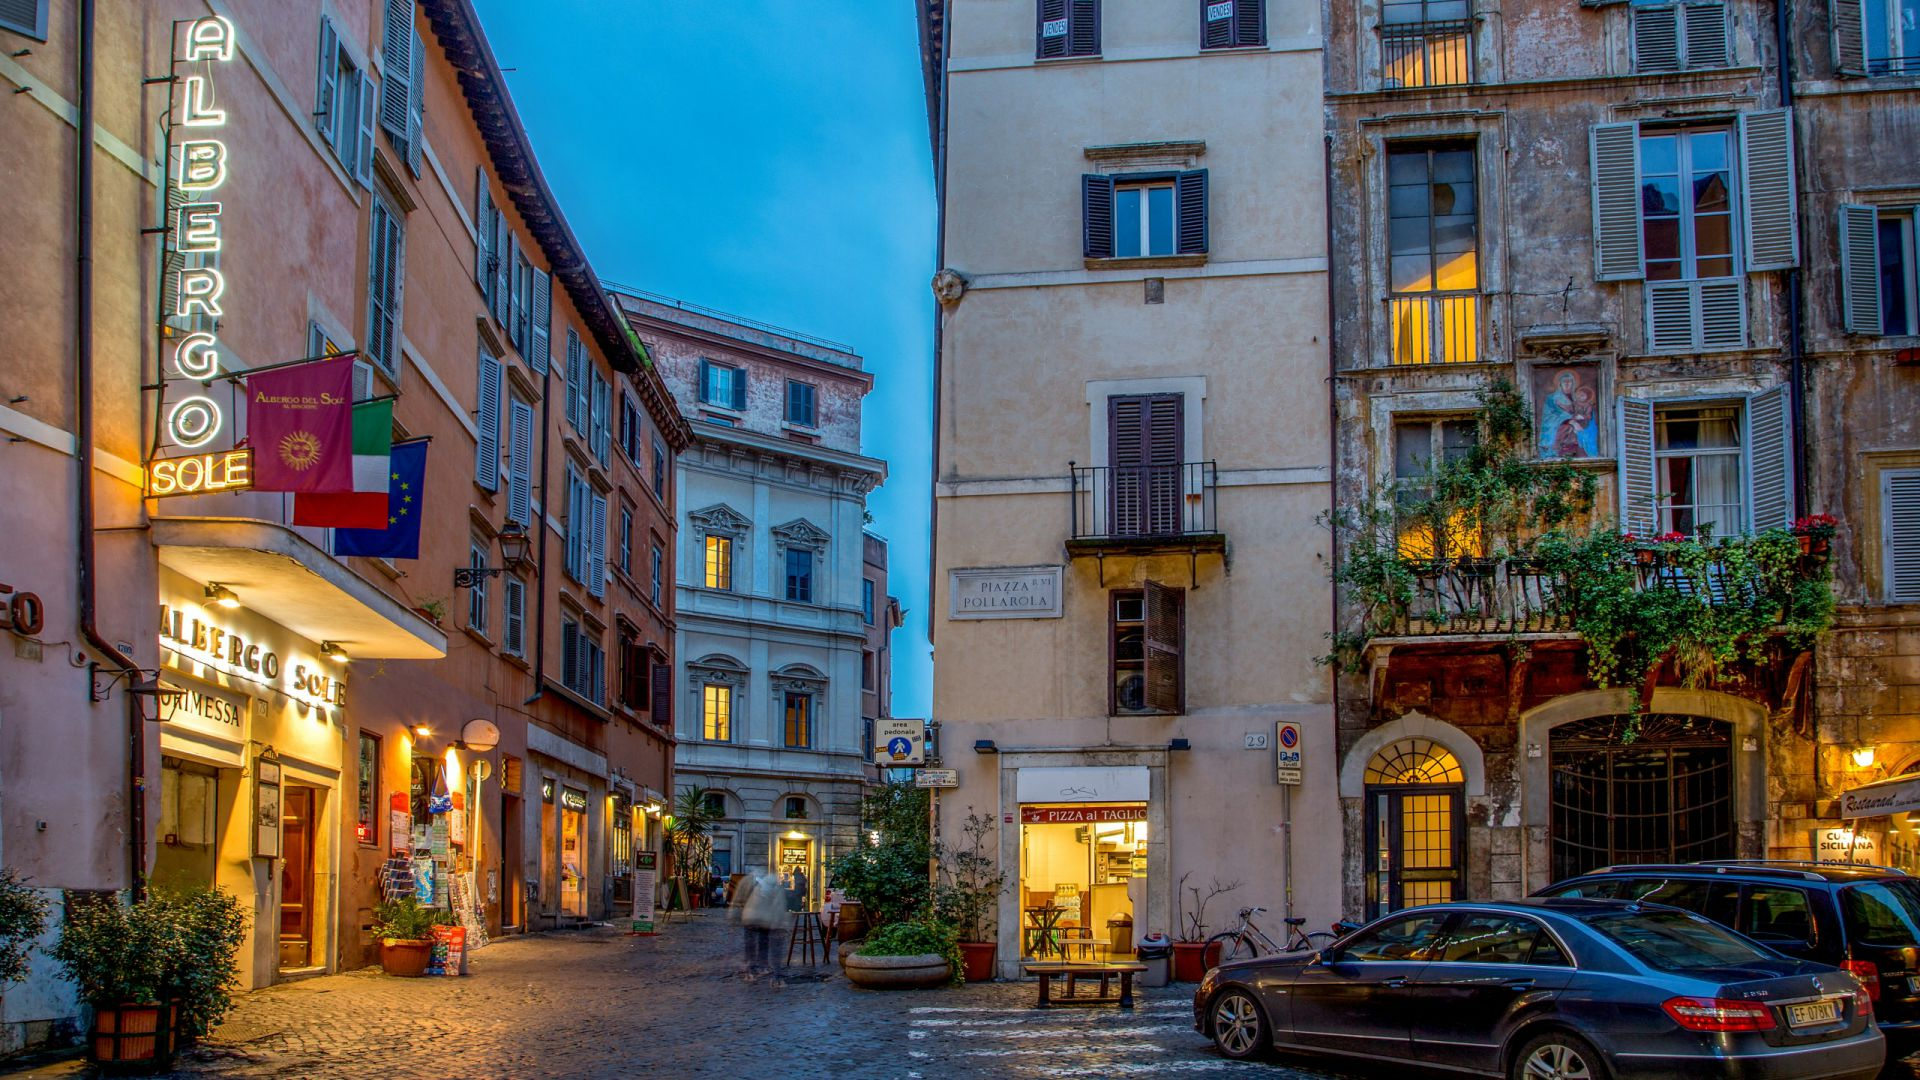 hotel-sole-rome-external01